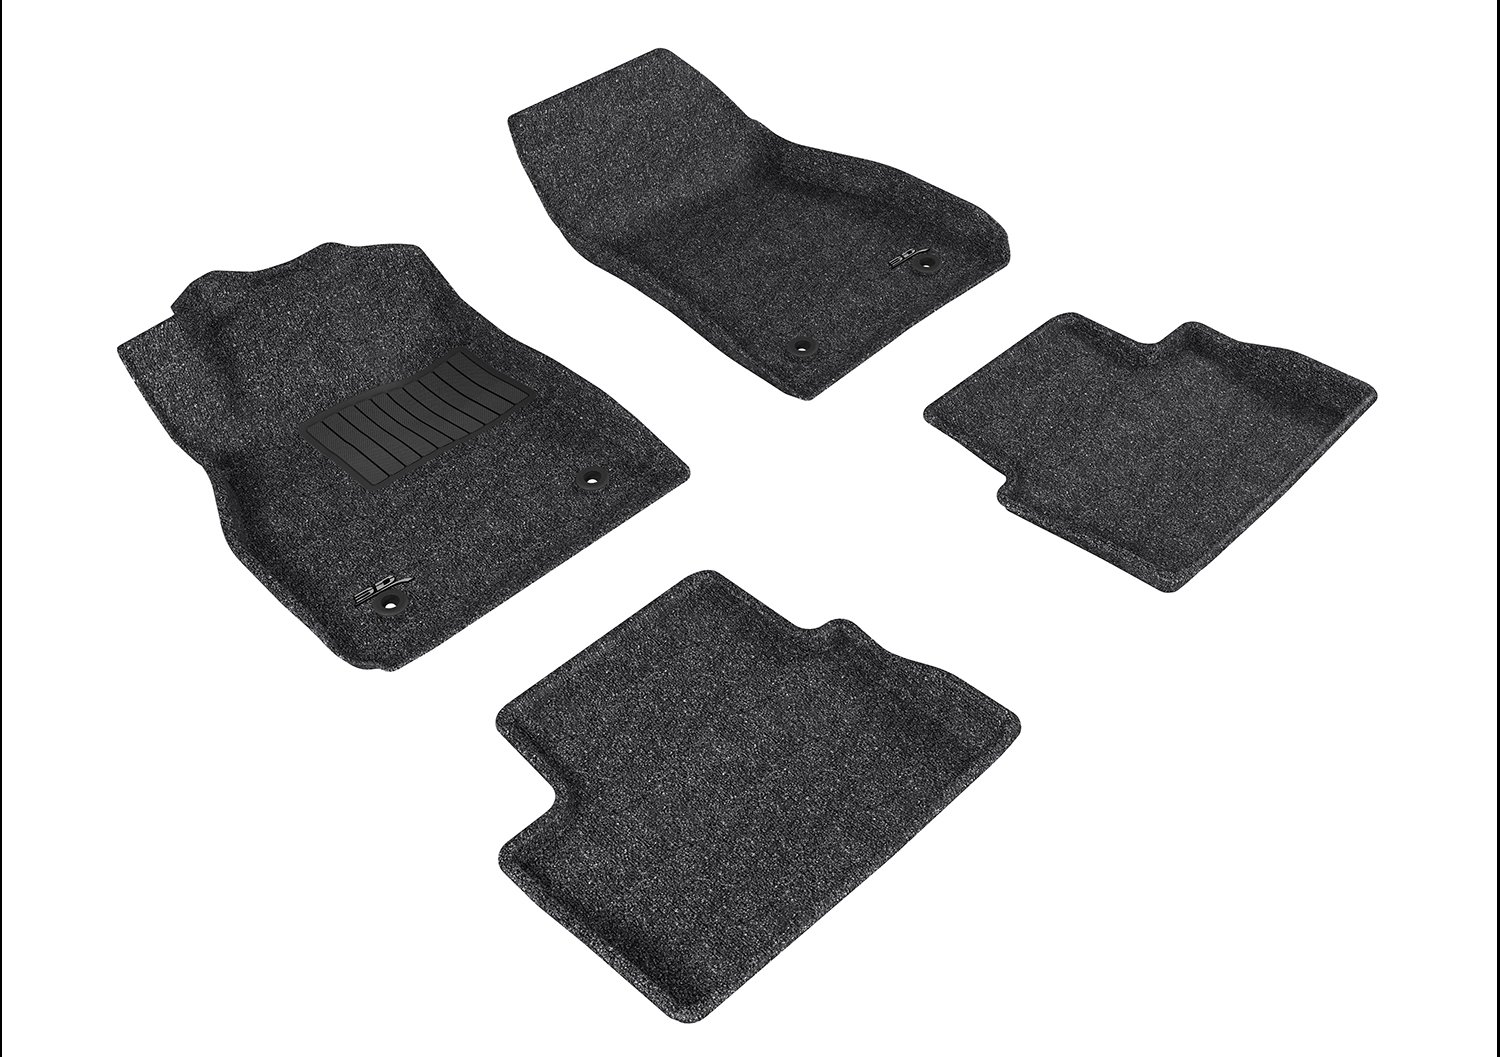 Tan 3D MAXpider Front Row Custom Fit All-Weather Floor Mat for Select Chevrolet Malibu Models L1CH06312202 Classic Carpet